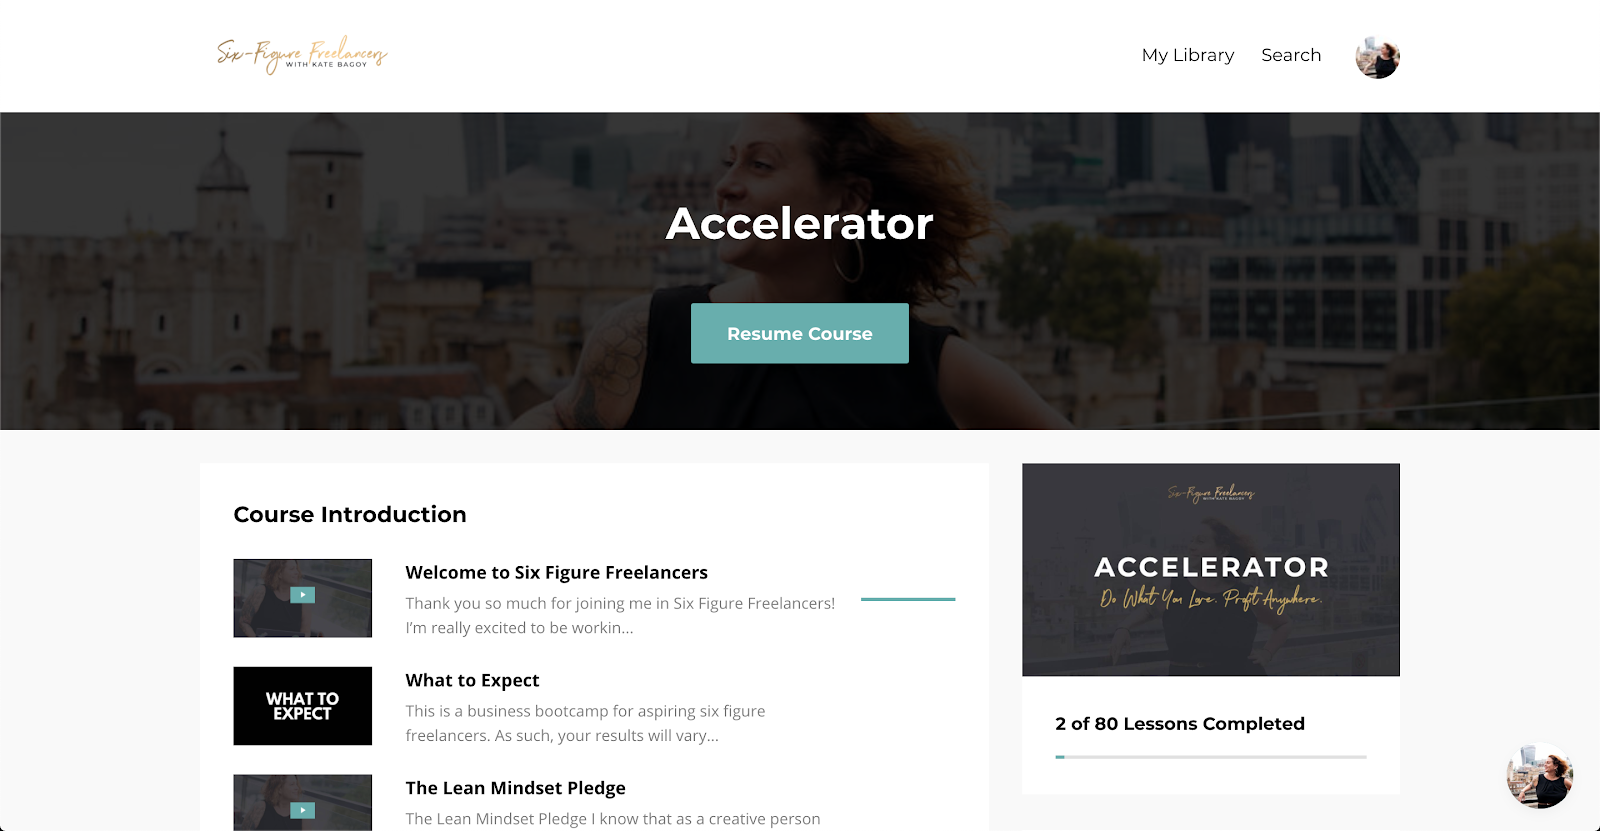 Buy Software Apps Lifetime Deal to Six Figure Freelancers Accelerator content